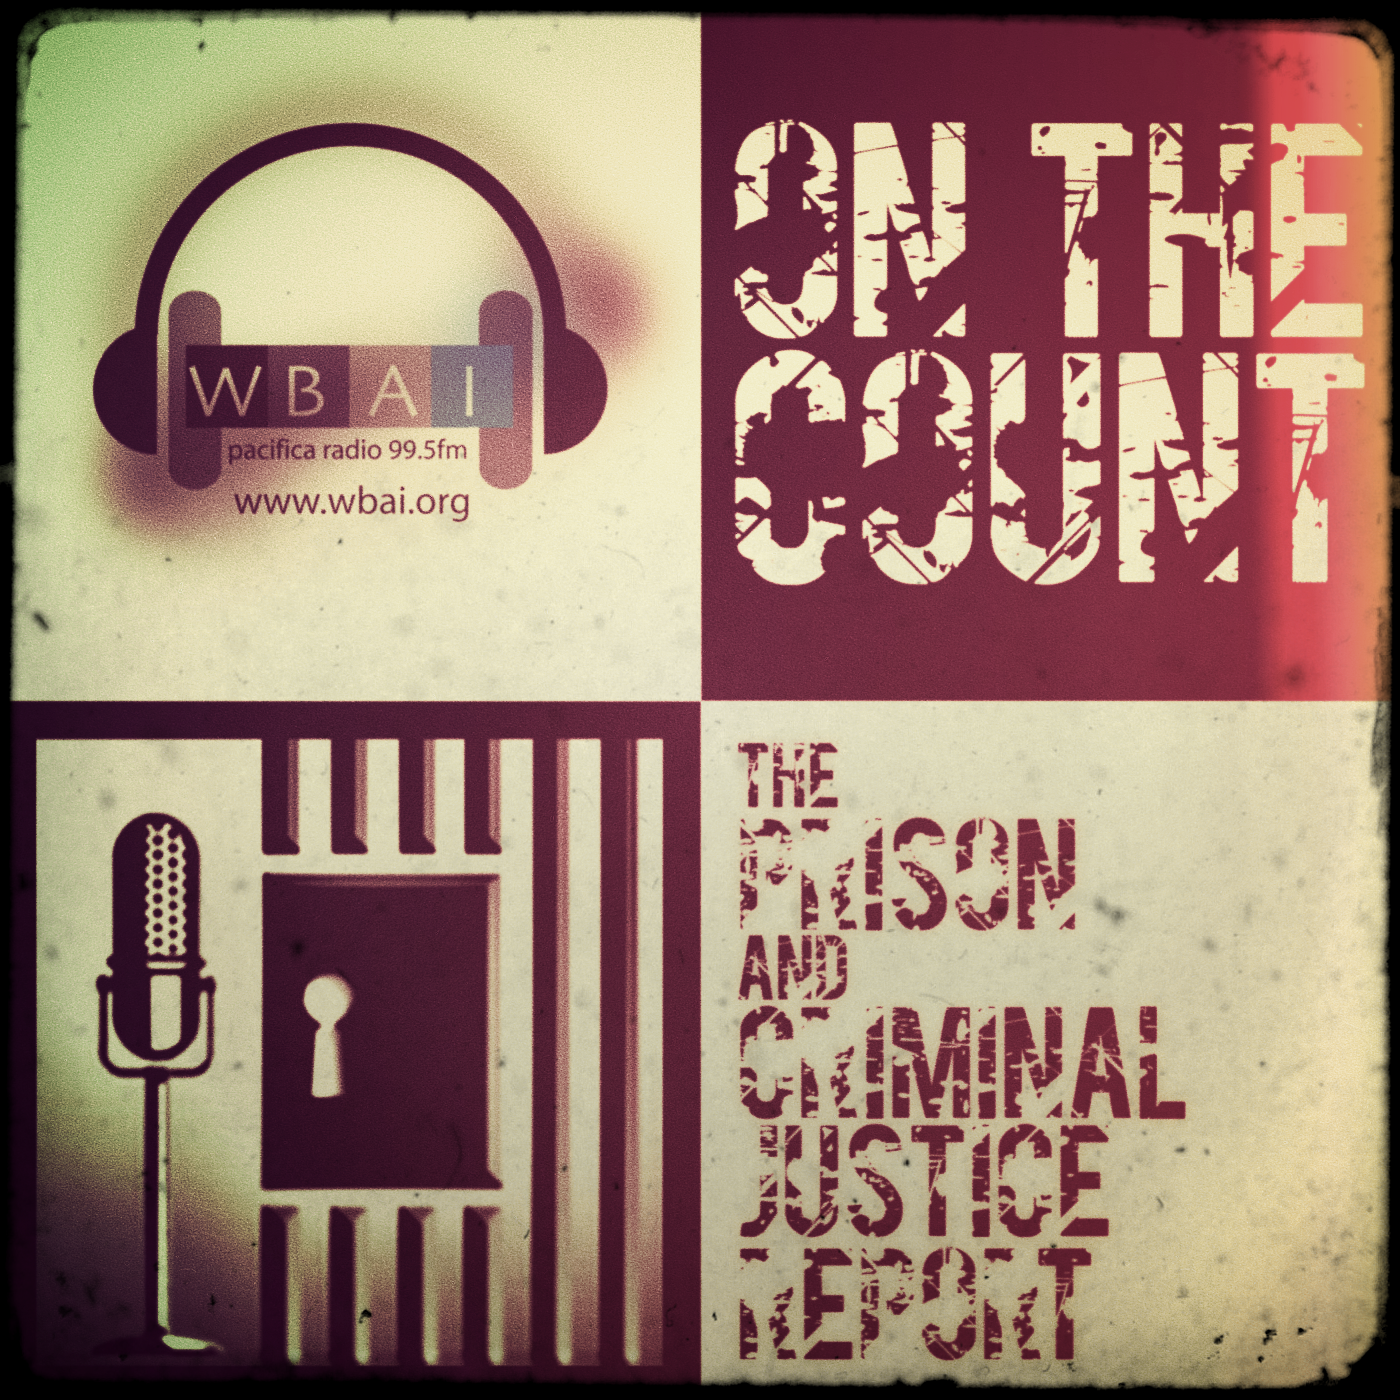 On The Count - The Prison and Criminal Justice Report (WBAI 99.5 fm)